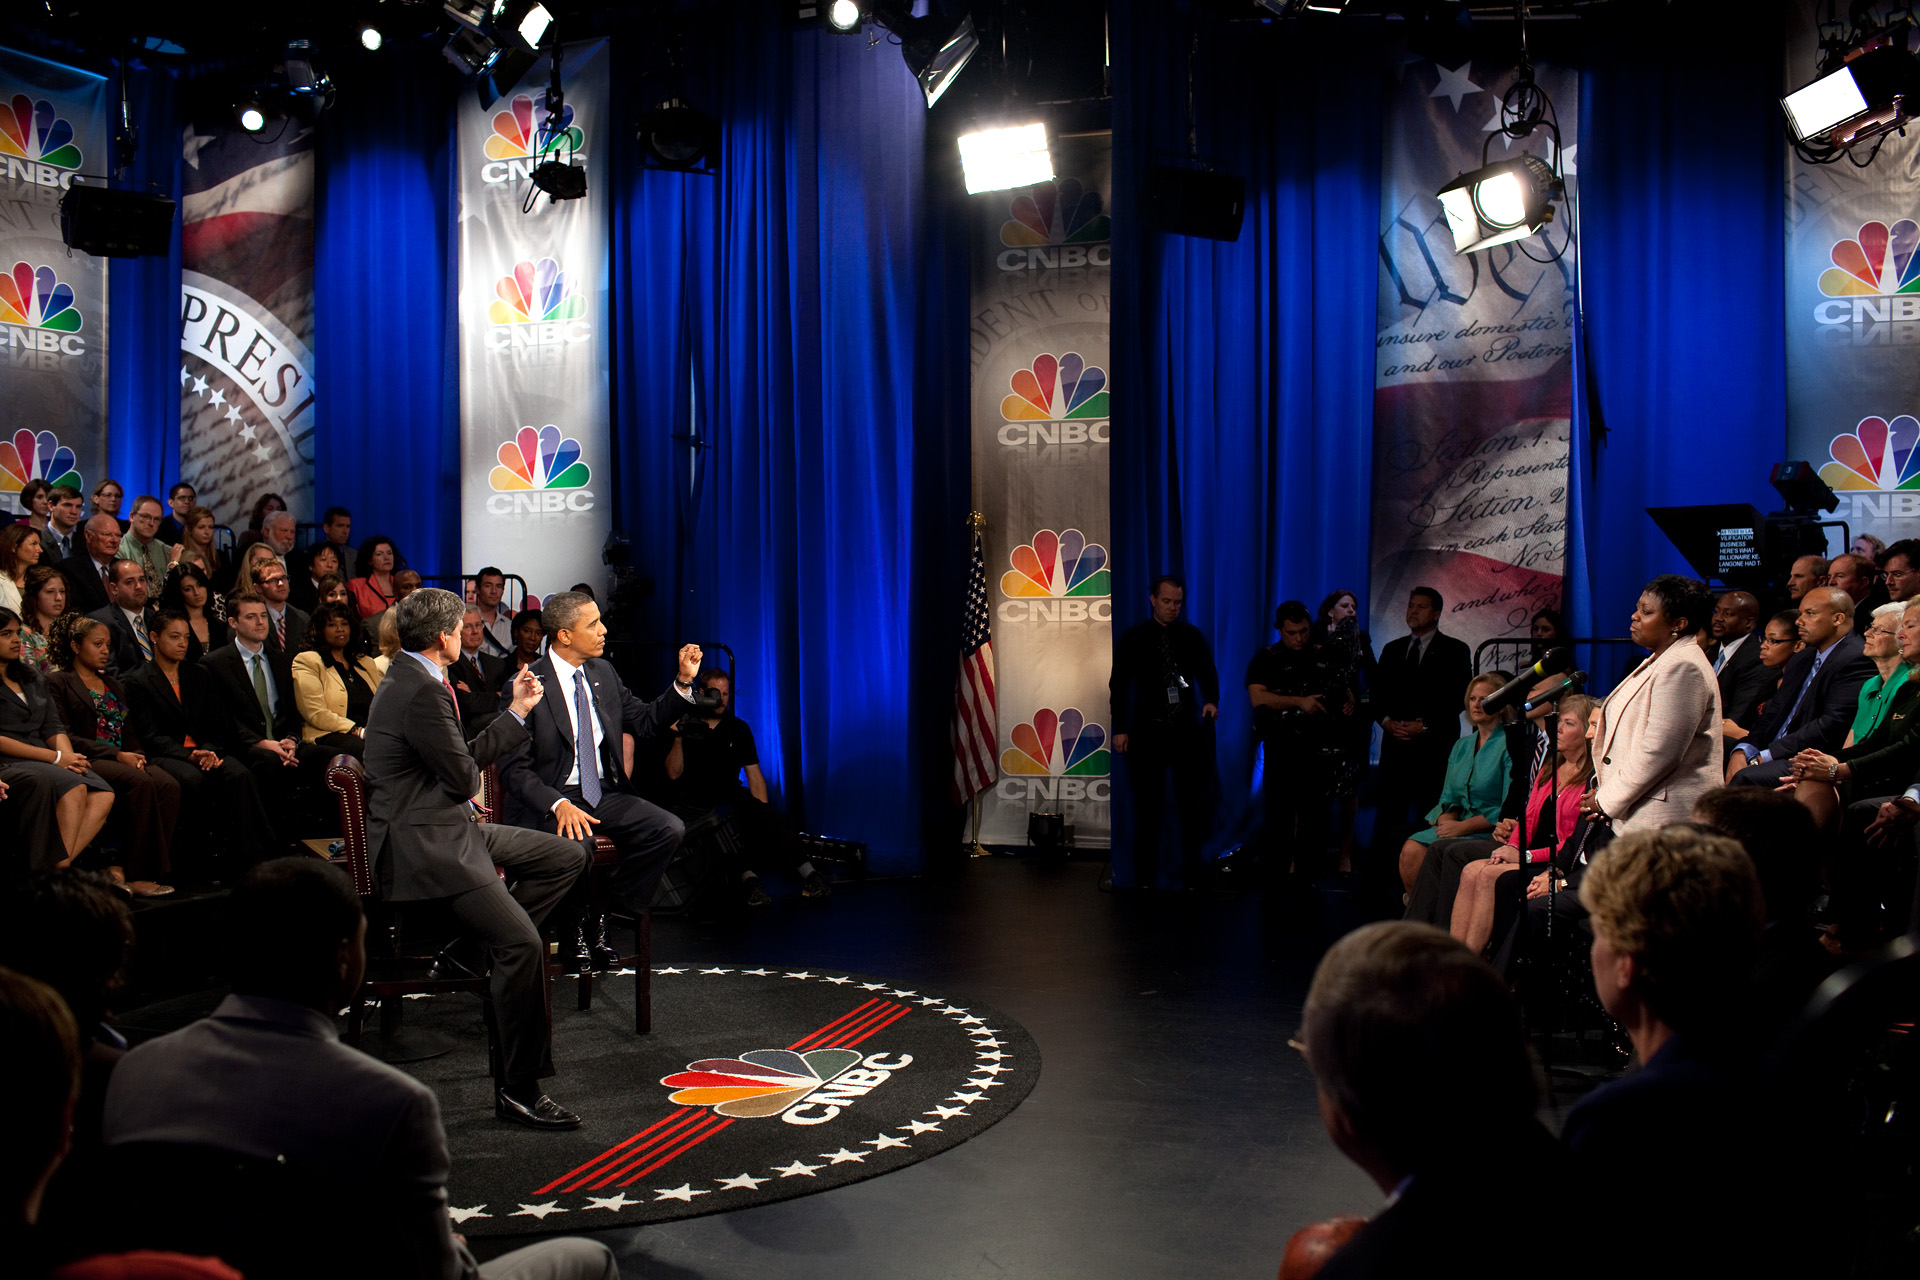 President Obama Addresses an Audience Member During an Answer at the CNBC Town Hall